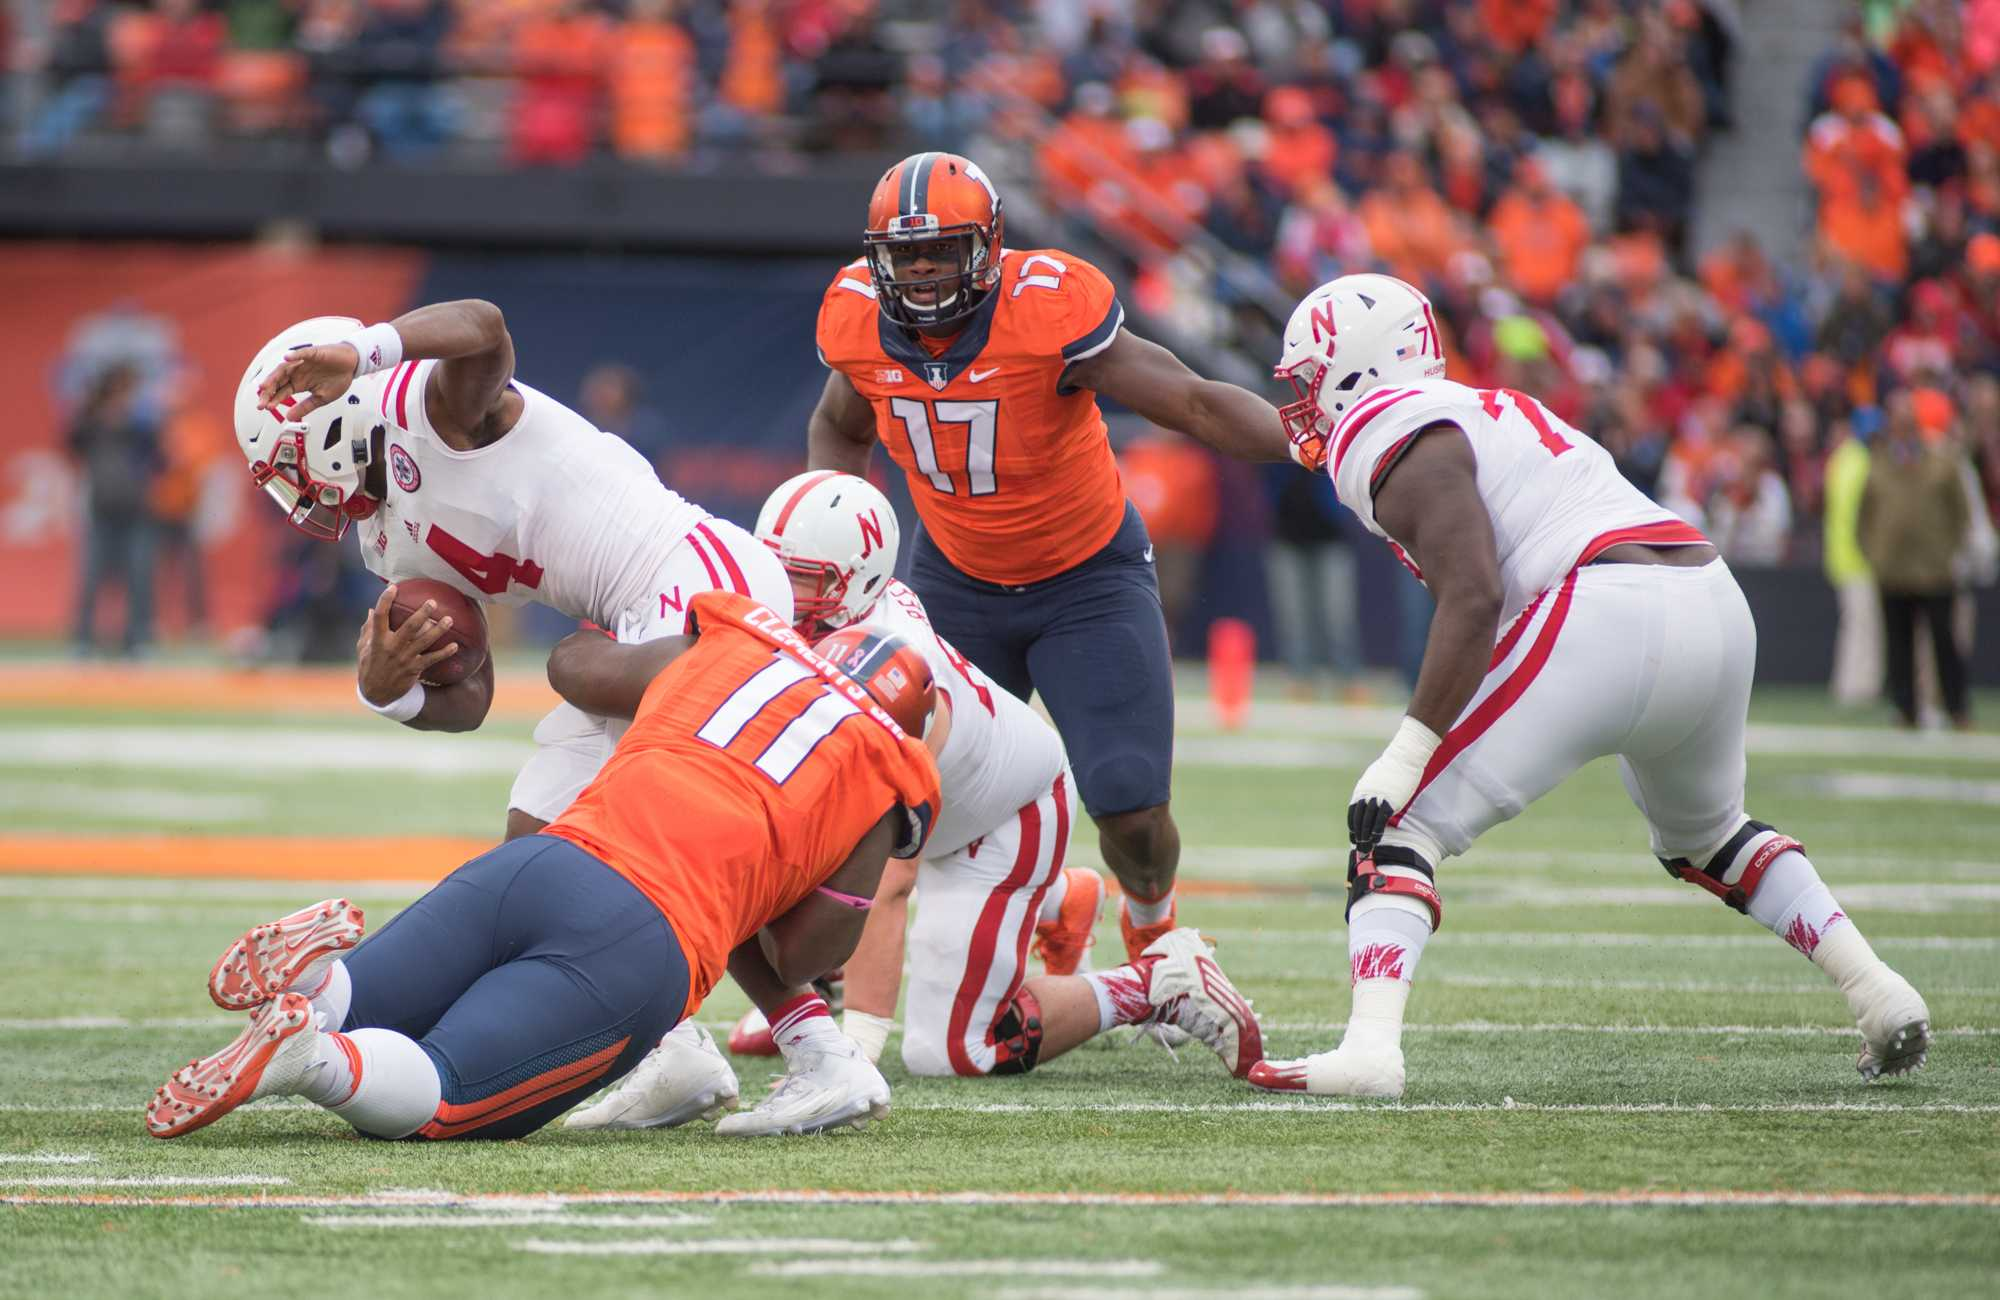 Chunky Clements drags down Nebraska quarterback Tommy Armstrong Jr. during Illinois' 14-13 win over Nebraska at Memorial Stadium on Oct. 3.